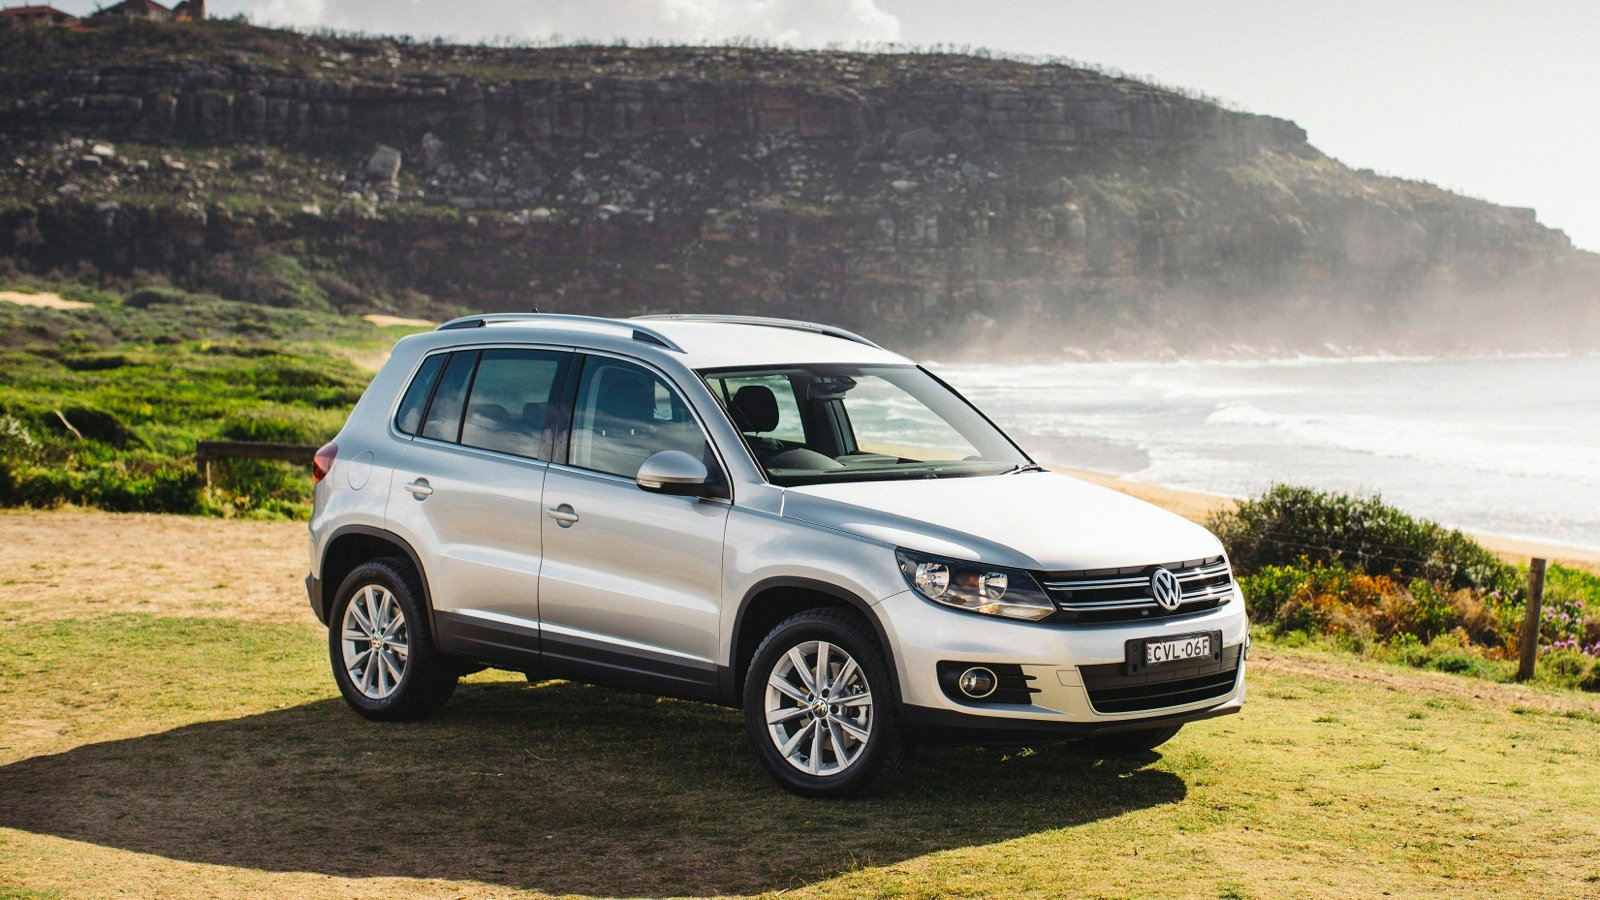 2015 volkswagen tiguan pricing and specifications photos 1 of 15. Black Bedroom Furniture Sets. Home Design Ideas